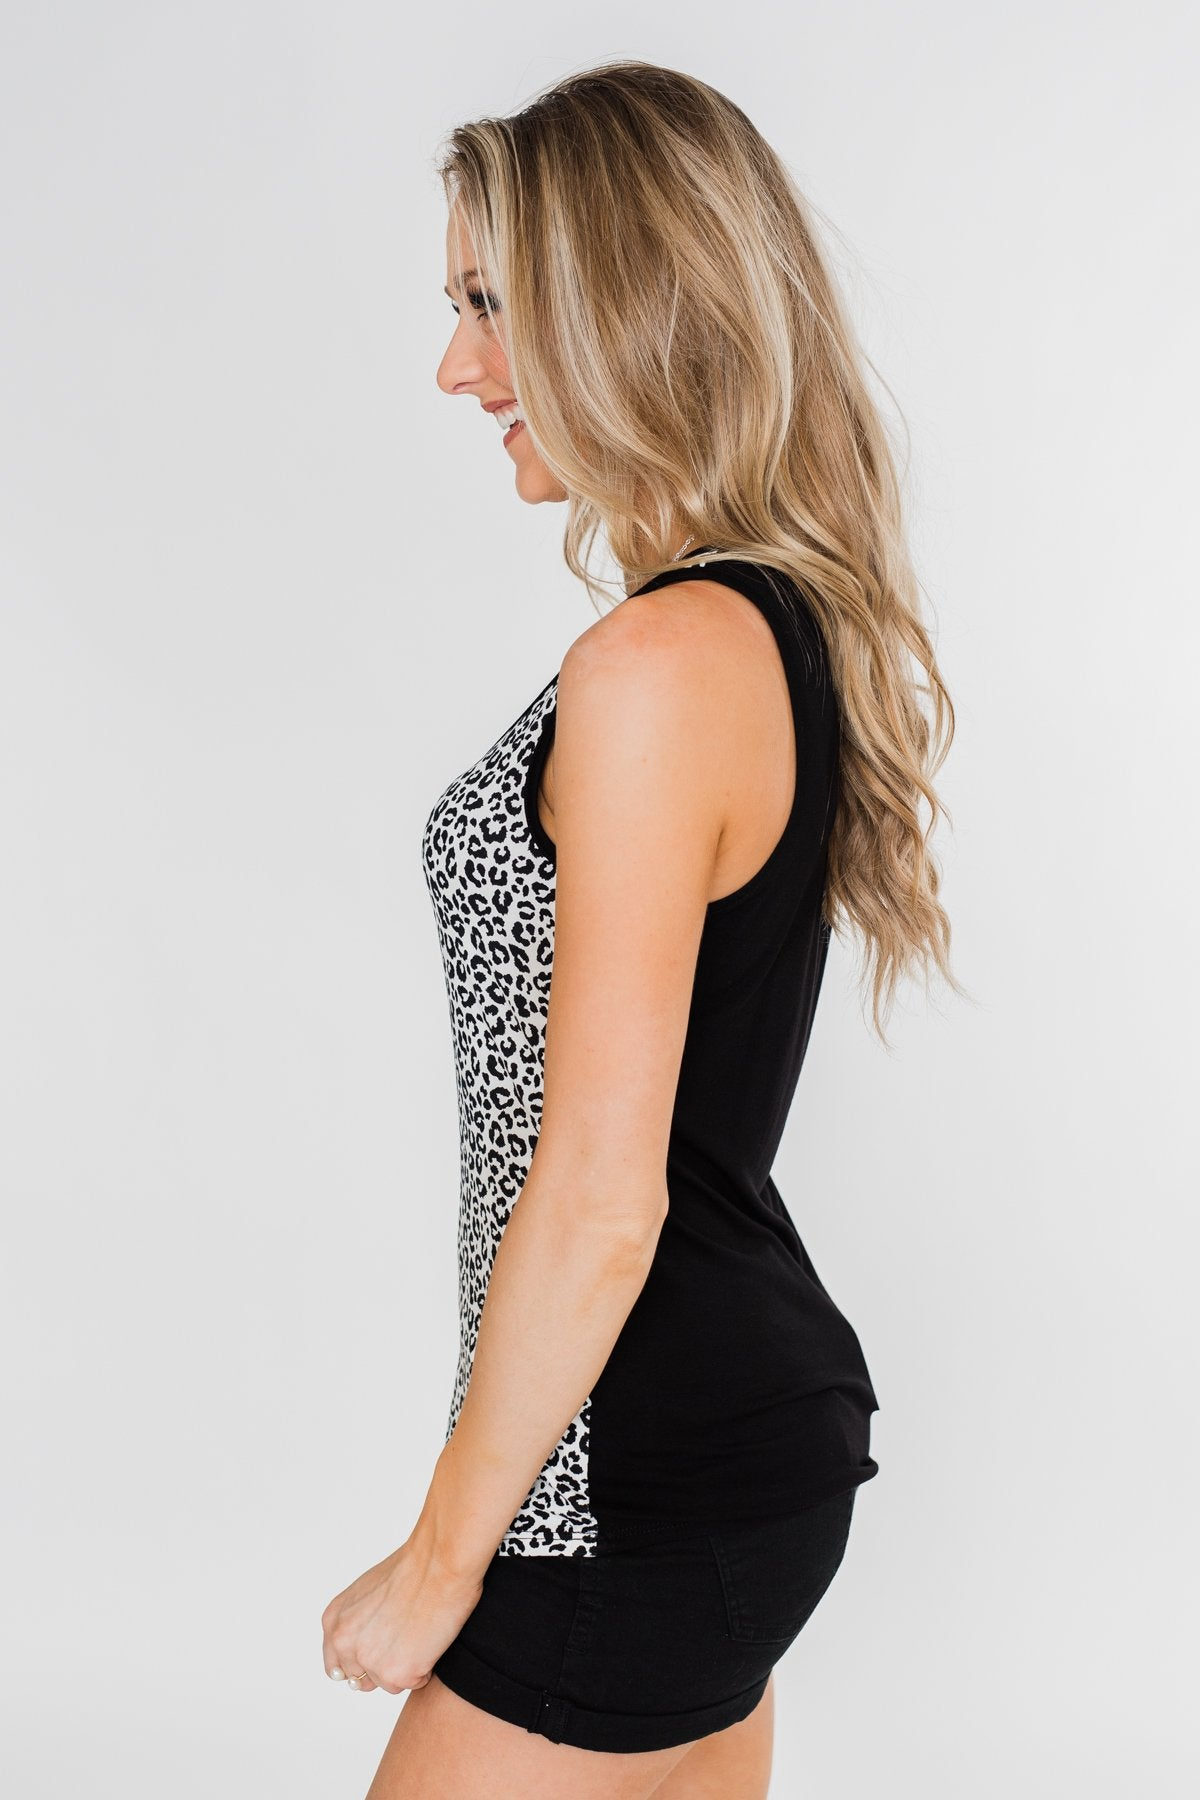 White Leopard Zipper Tank Top- Black and White